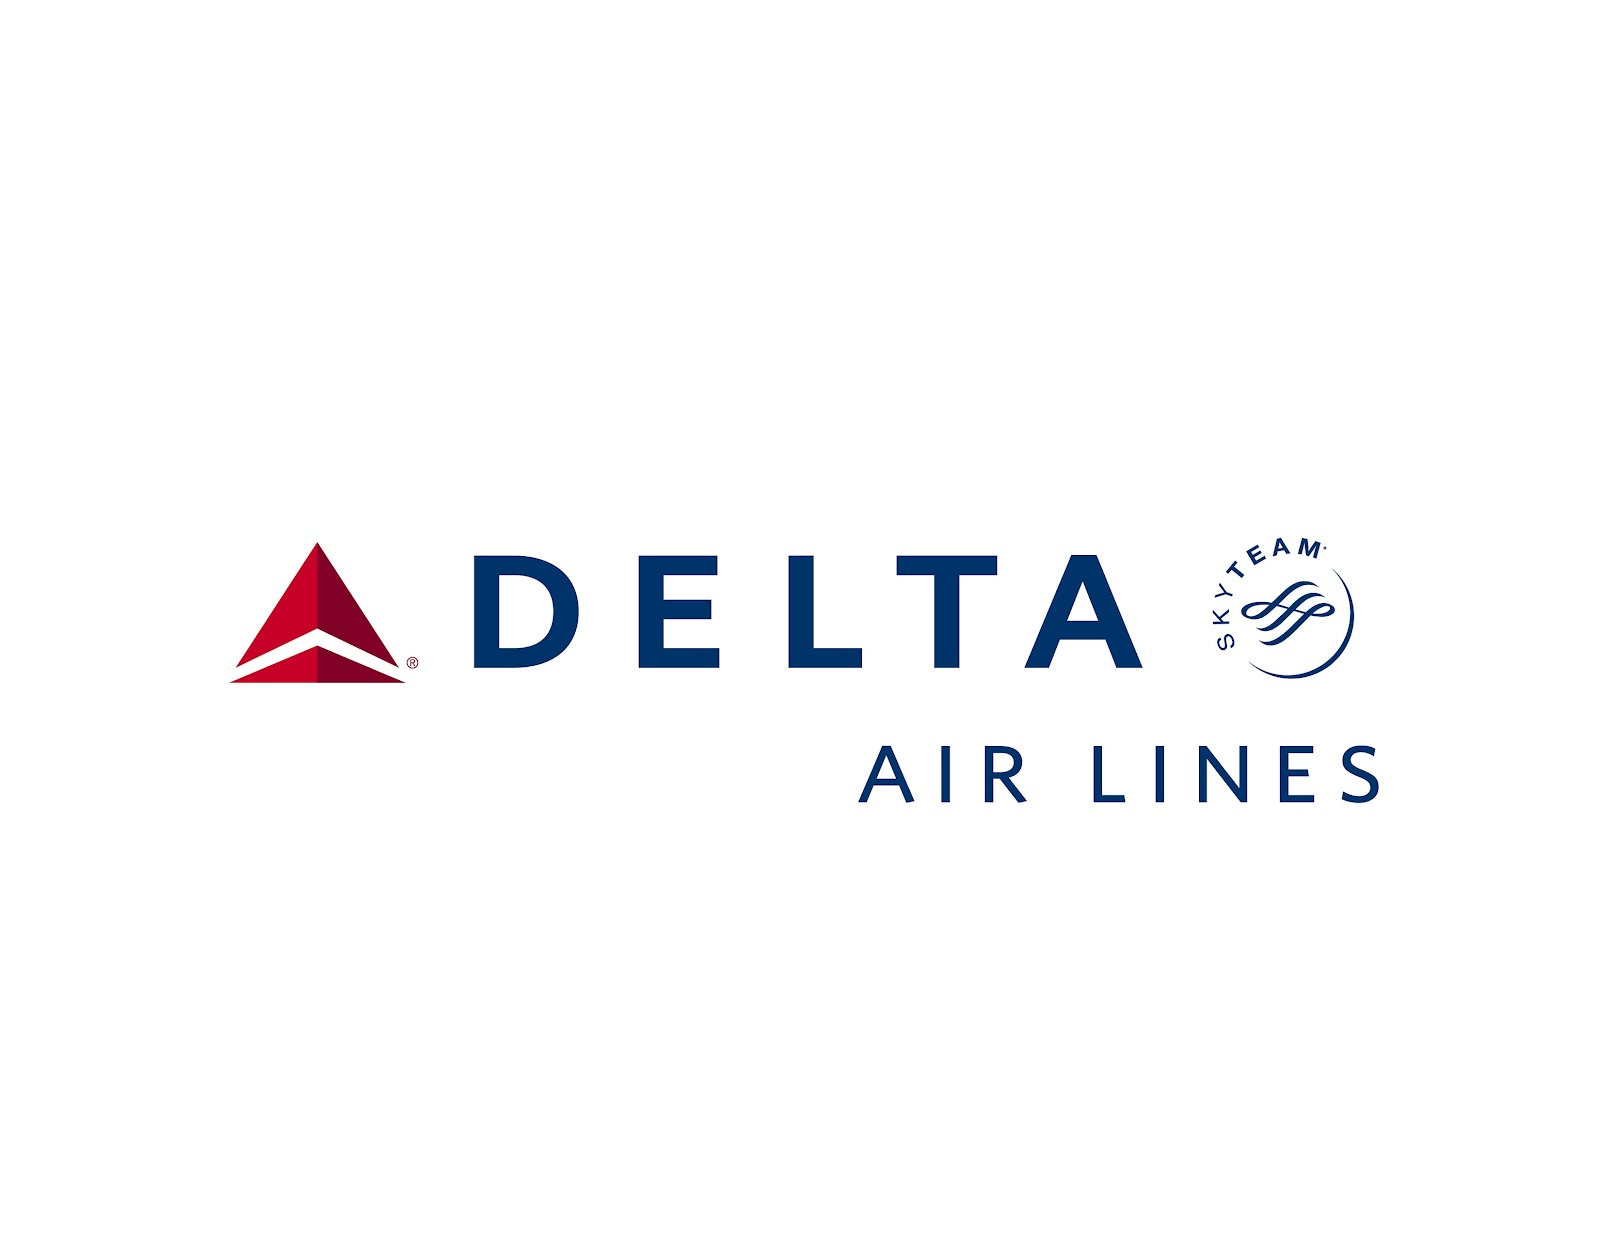 Delta airlines toll free phone number customer service number